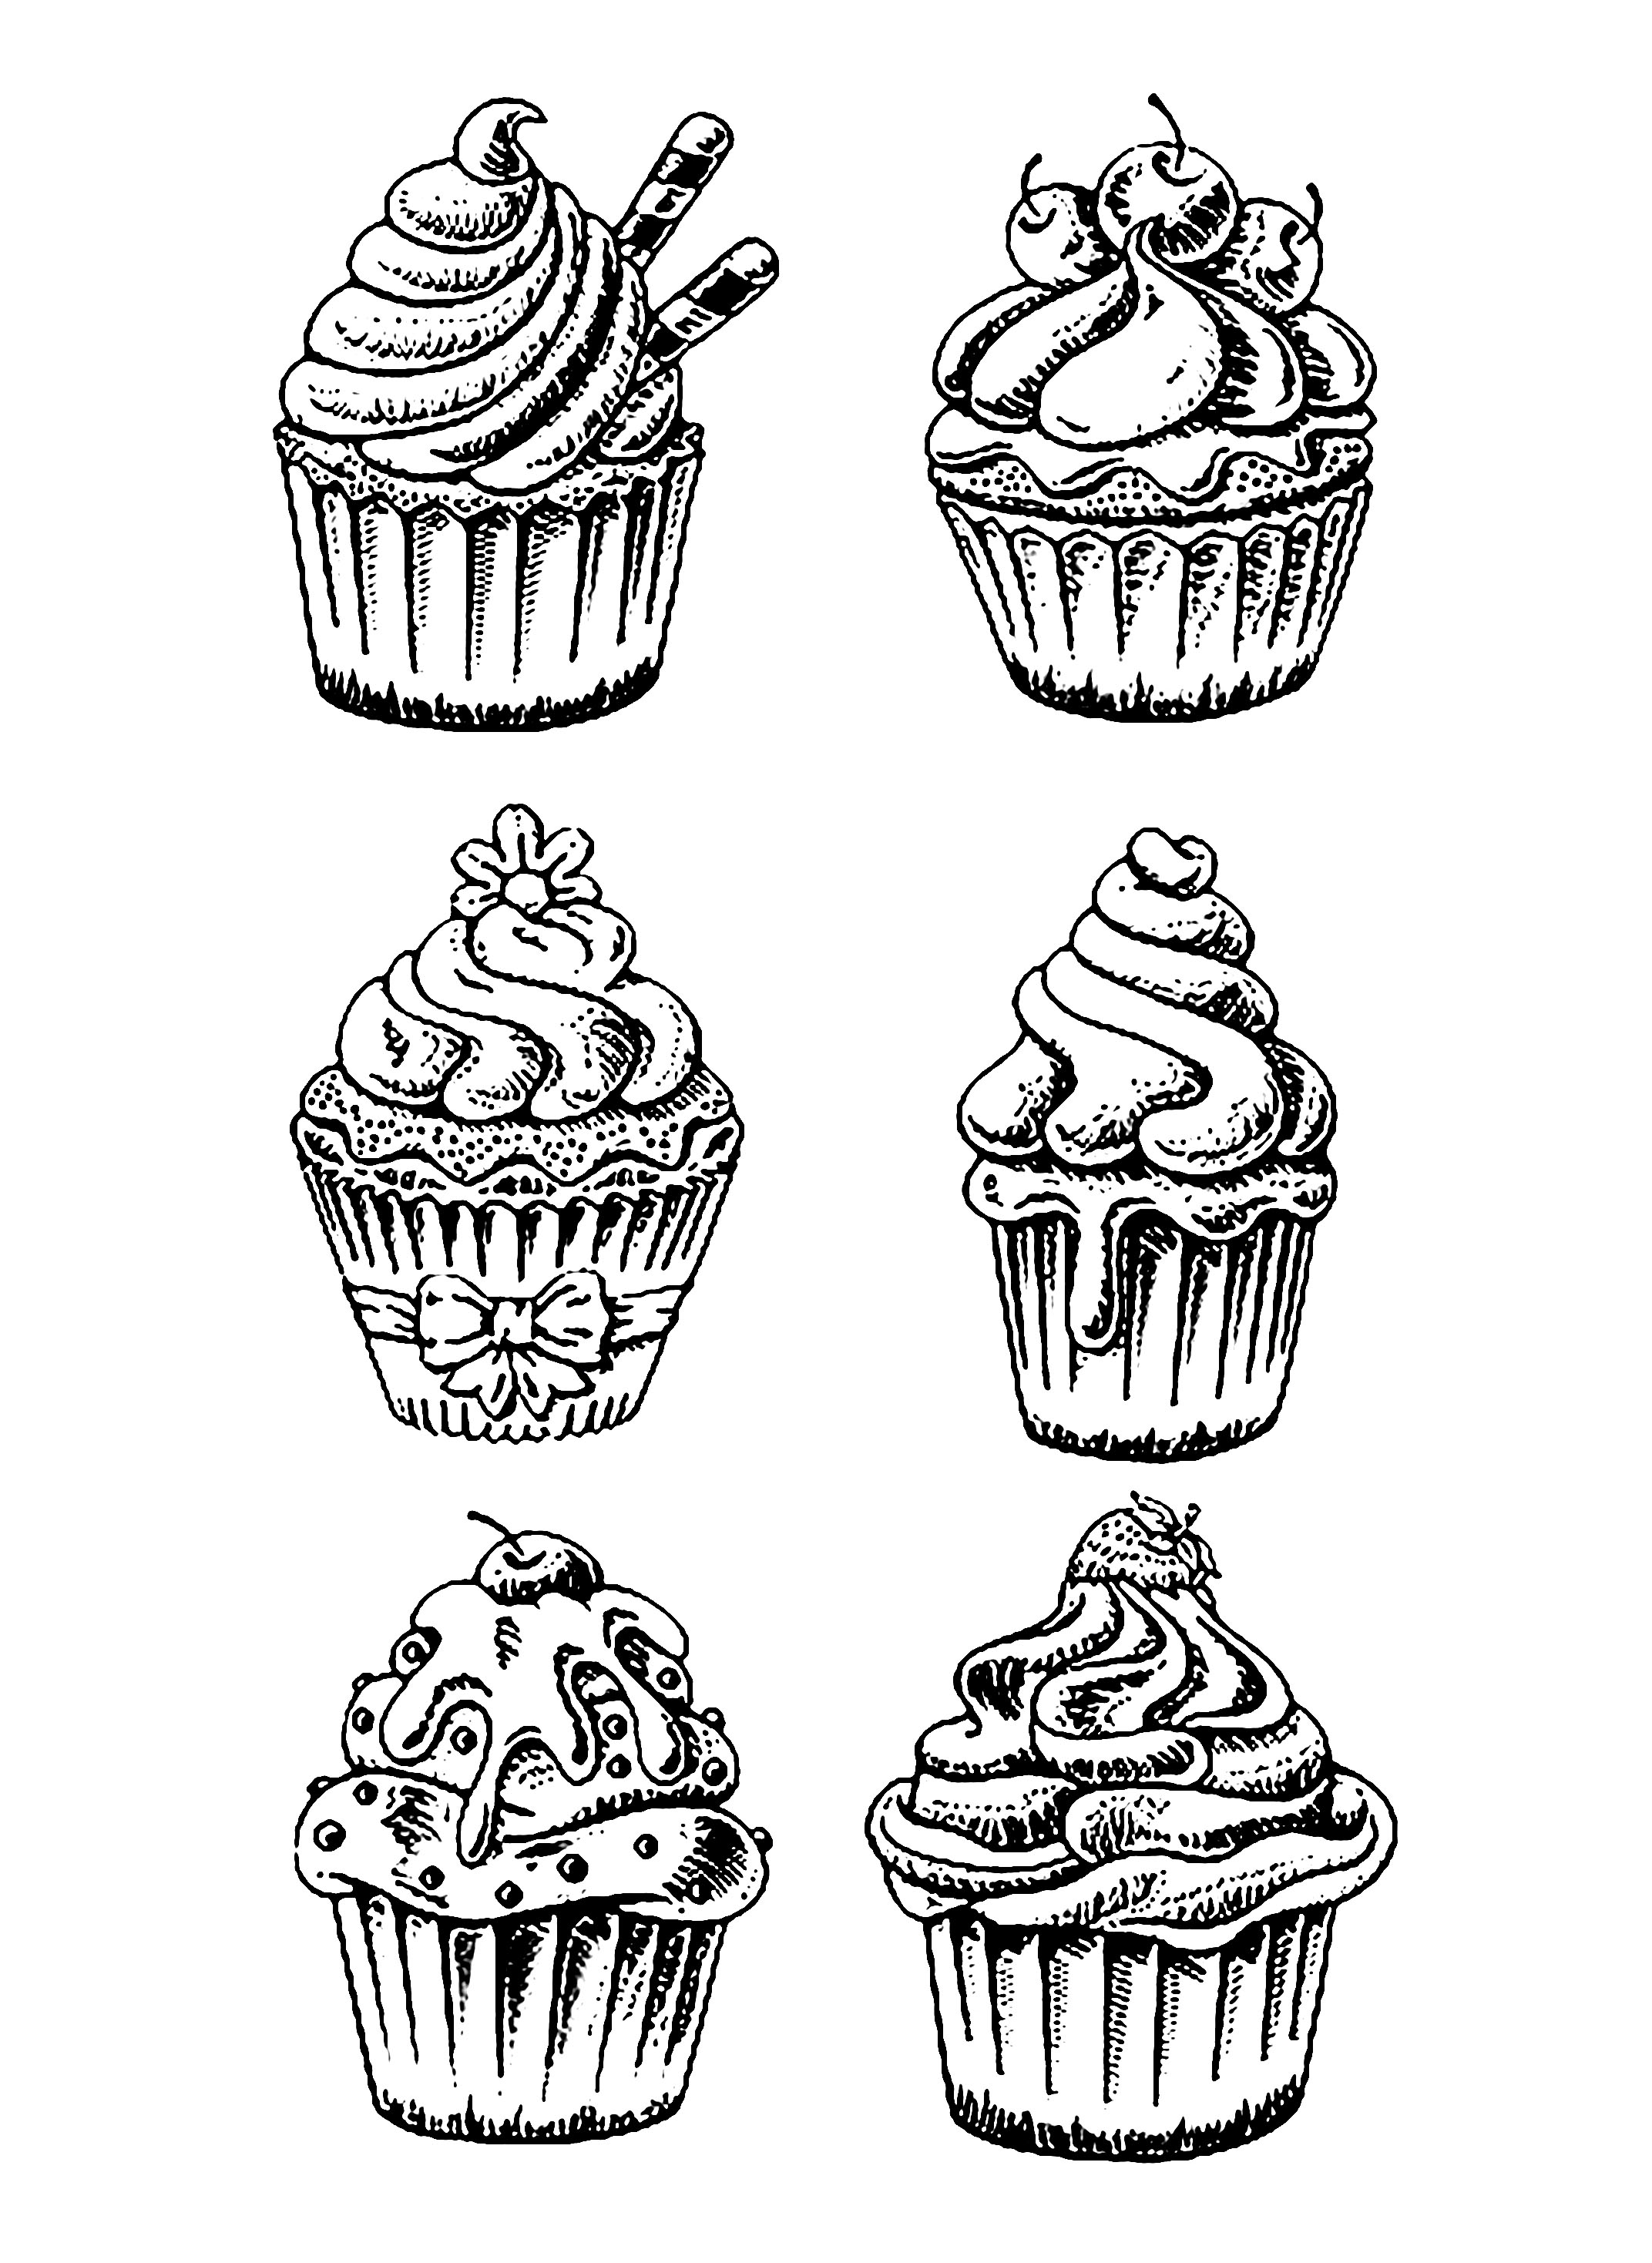 Cup cakes 9623